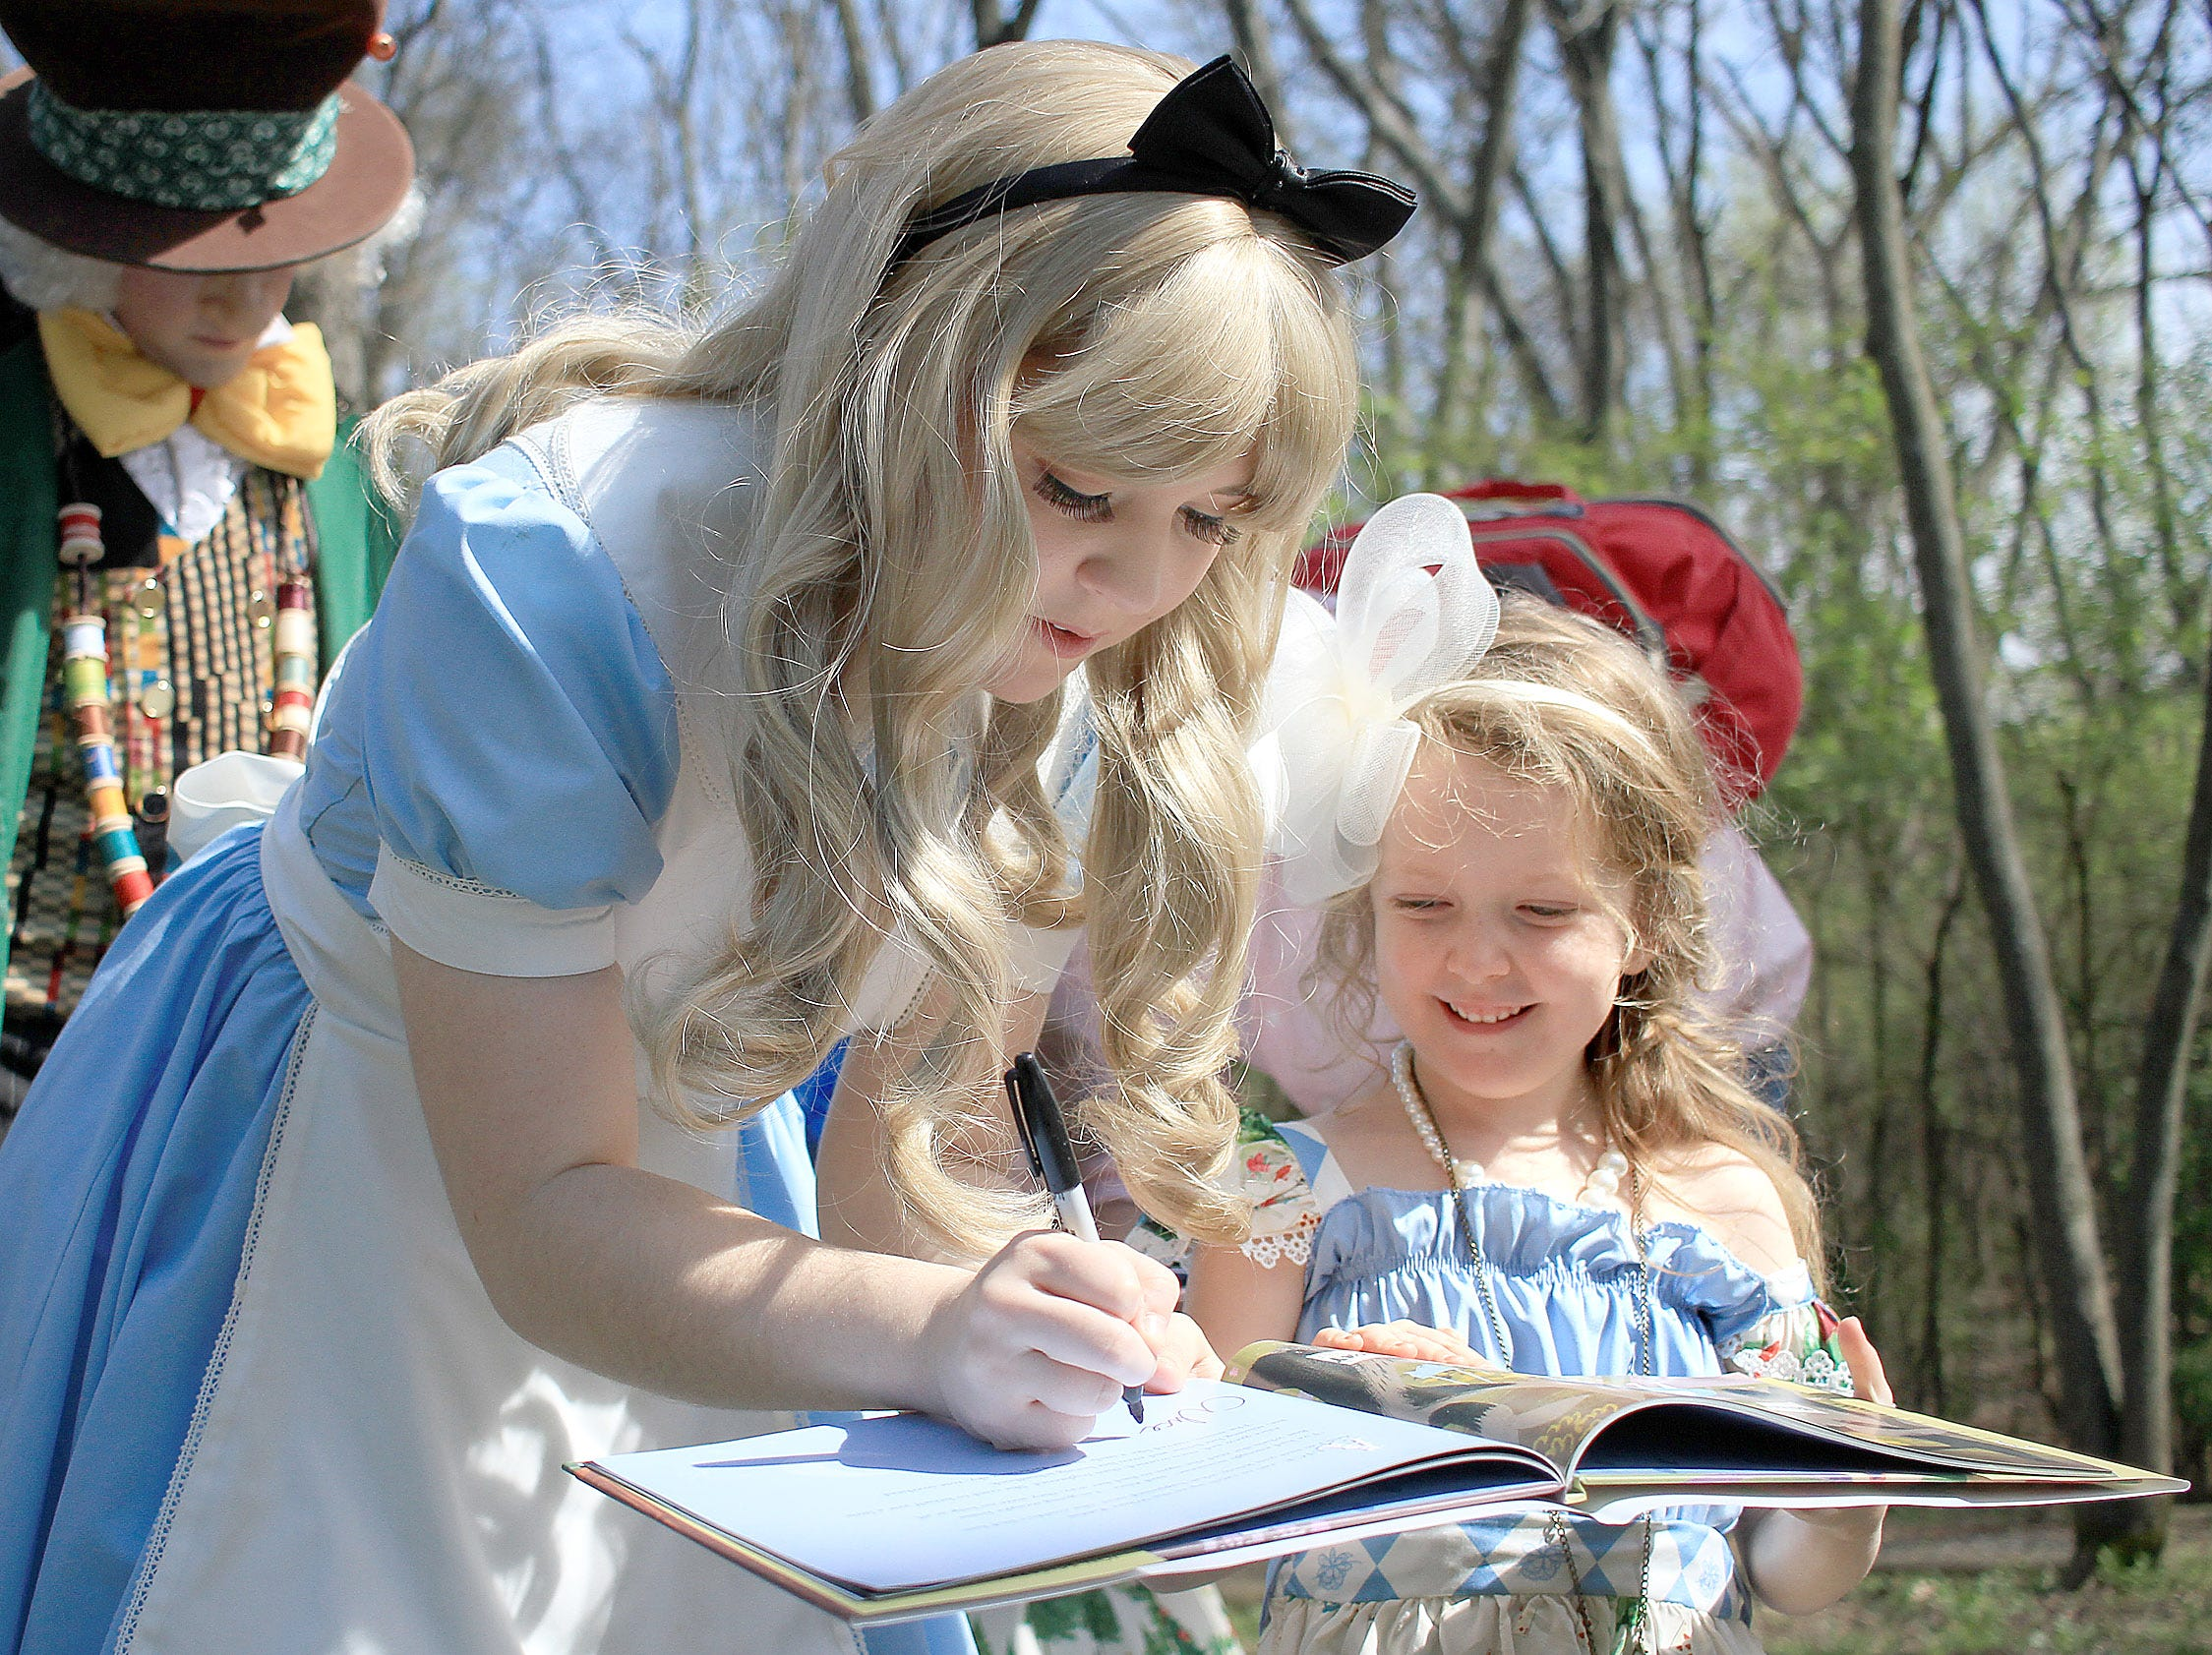 McKinley Passcarella (5) gets an autograph from Alice in Wonderland at Rock Castle in Hendersonville, TN on Saturday, April 6, 2019.